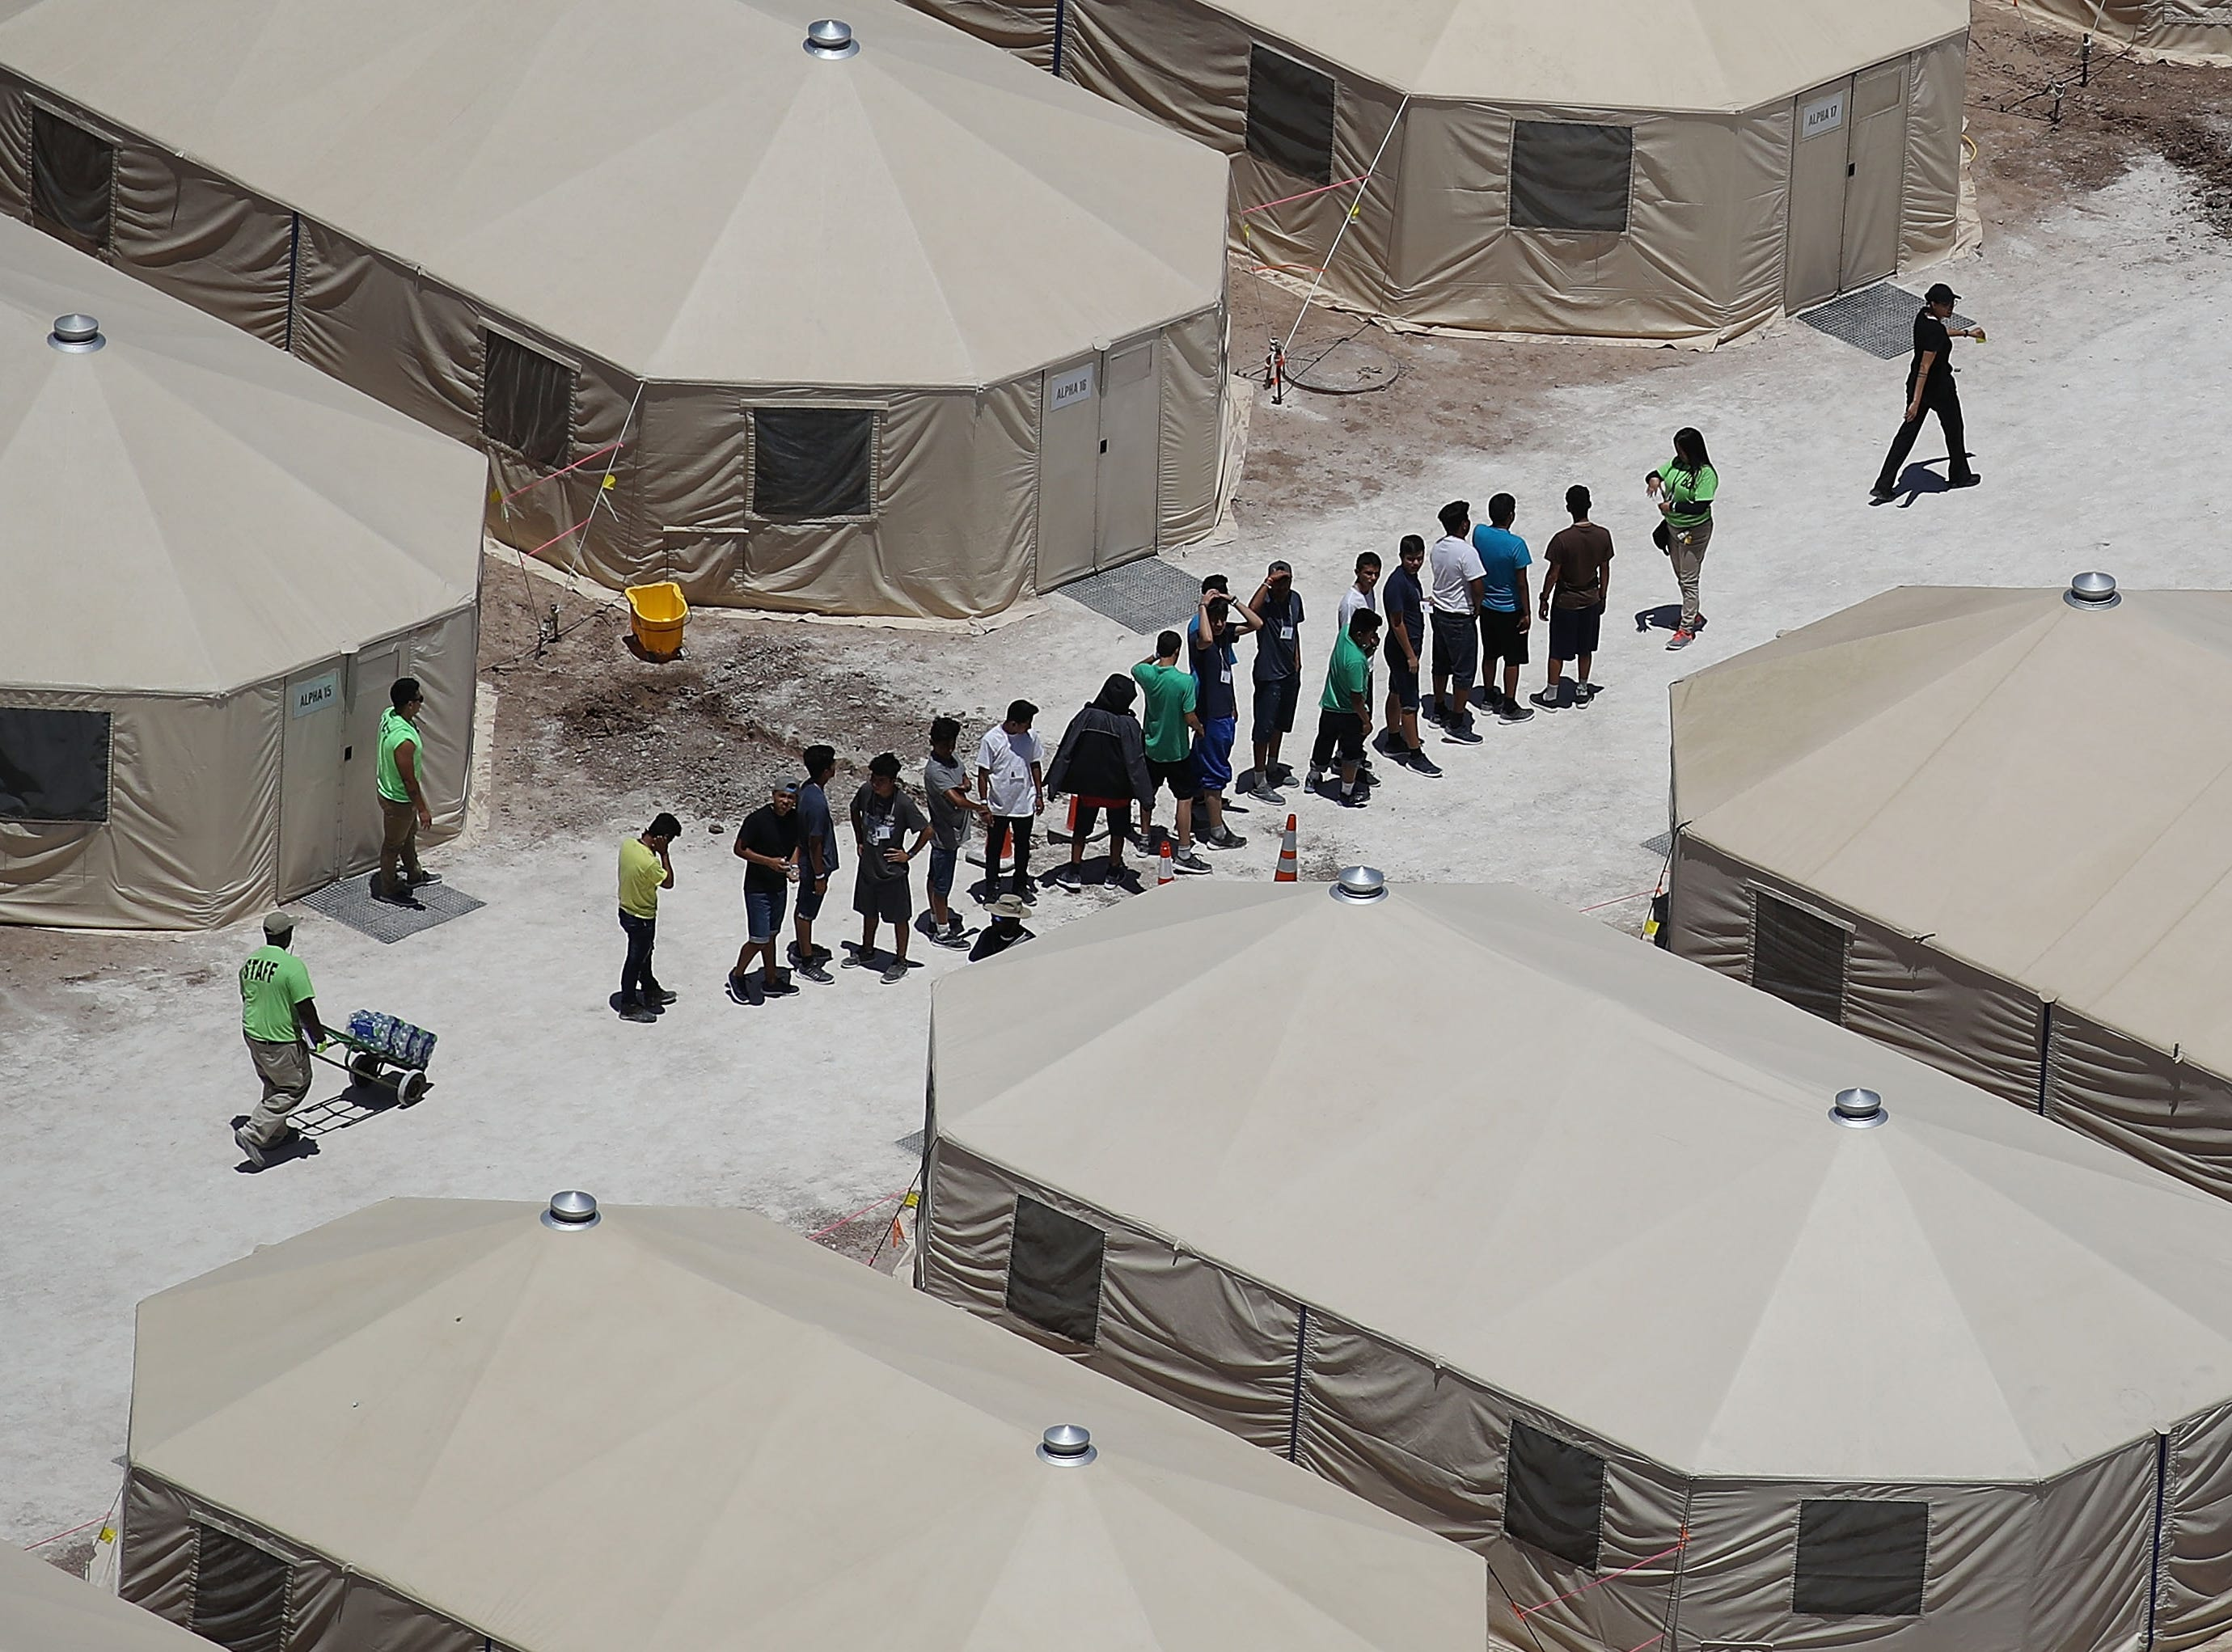 June 19, 2018: Children and workers are seen at a tent encampment recently built near the Tornillo Port of Entry in Tornillo, Texas. The Trump administration is using the Tornillo tent facility to house immigrant children separated from their parents after they were caught entering the U.S. under the administration's zero tolerance policy.